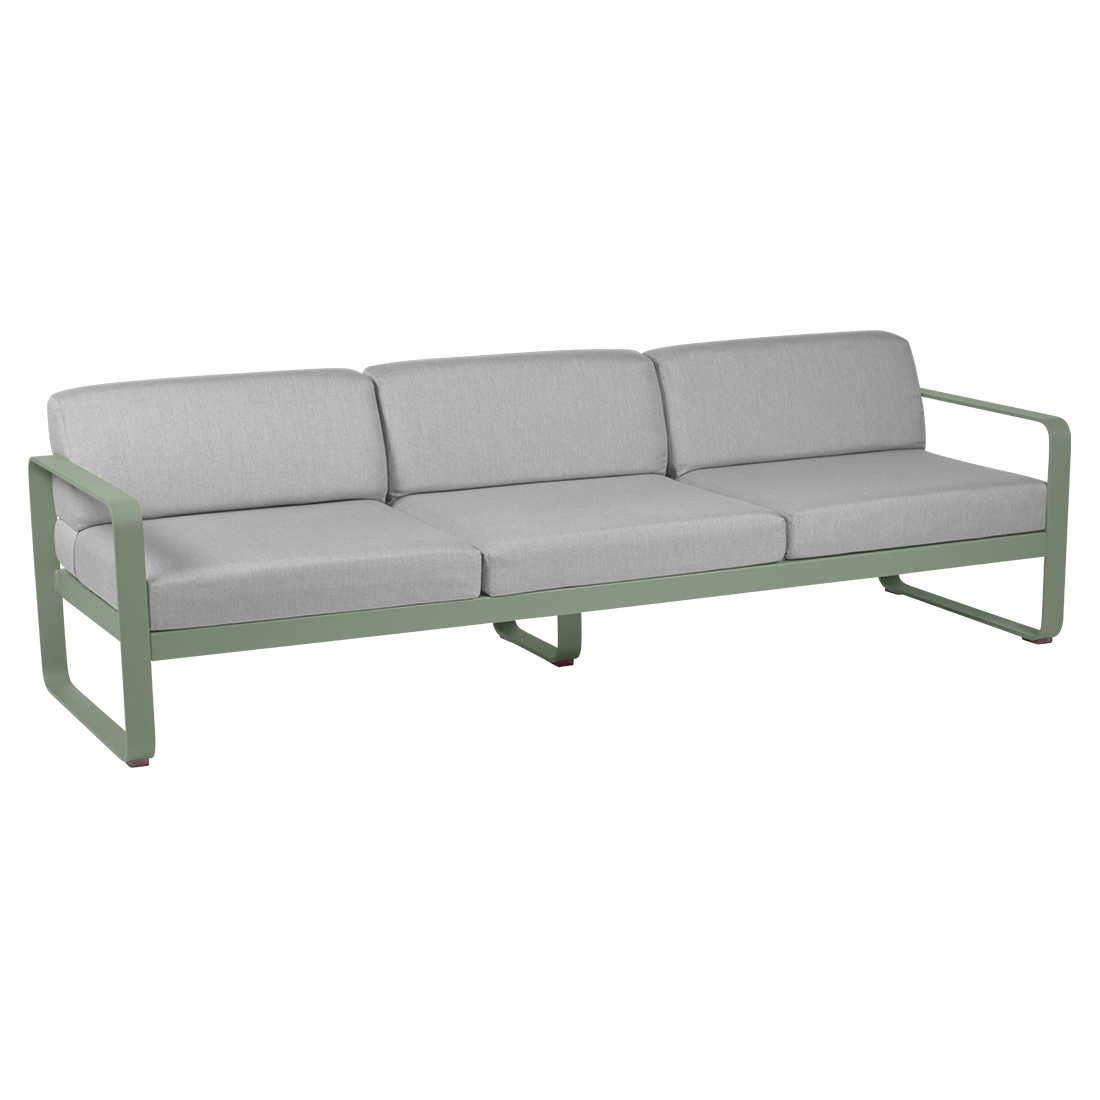 FERMOB Bellevie 3-Seater Outdoor Sofa with Grey Cushions